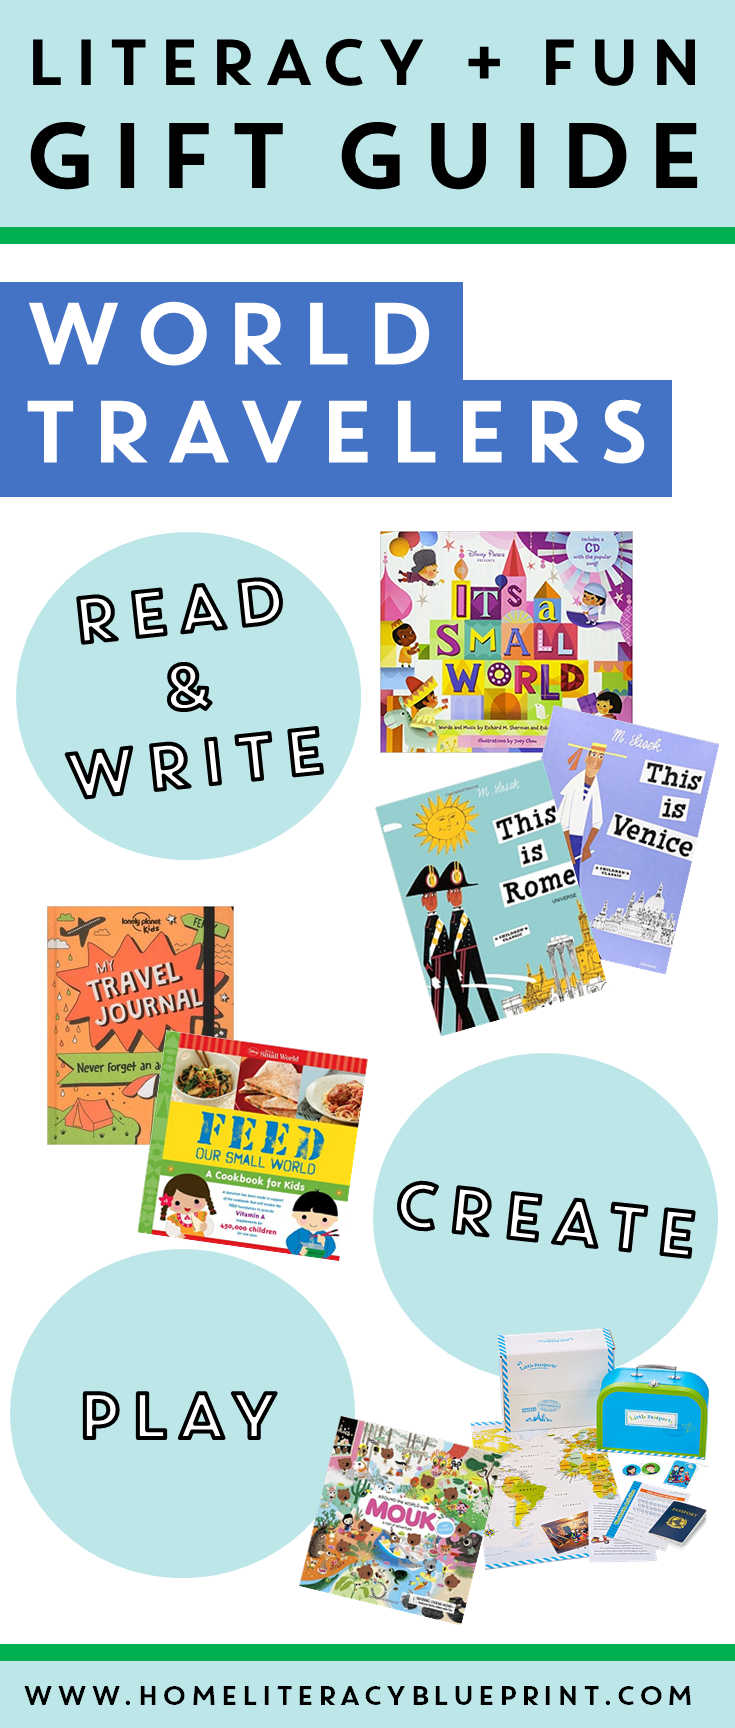 Literacy and Fun Gift Guide for World Travelers